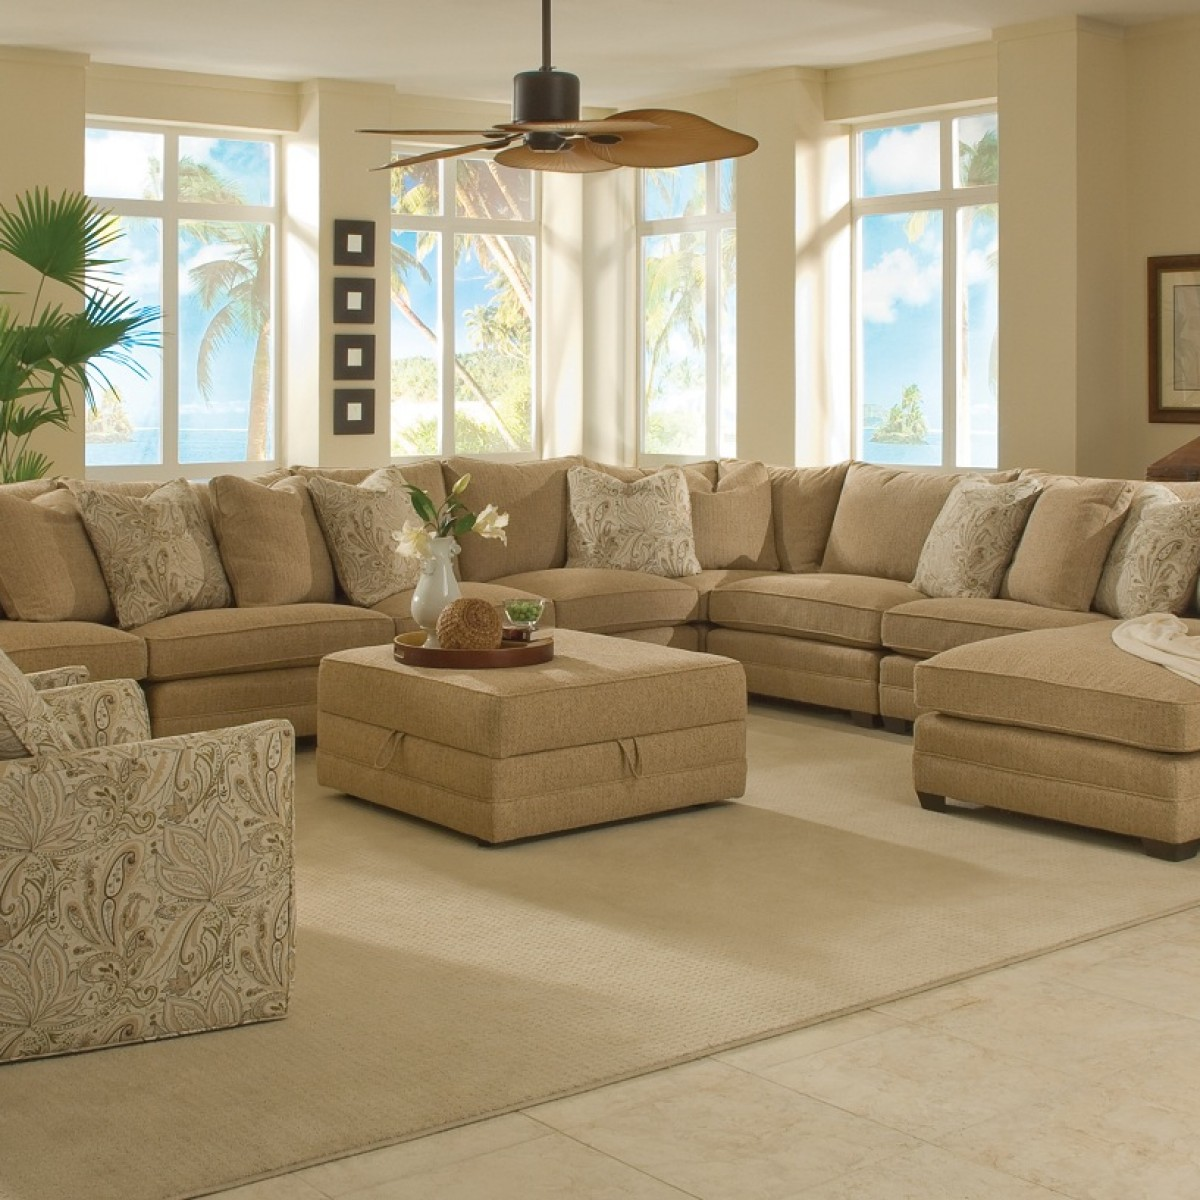 Large Sectional Sofas | Extra Large Sectional Sofas with Chaise | Large Deep Sectional Sofas